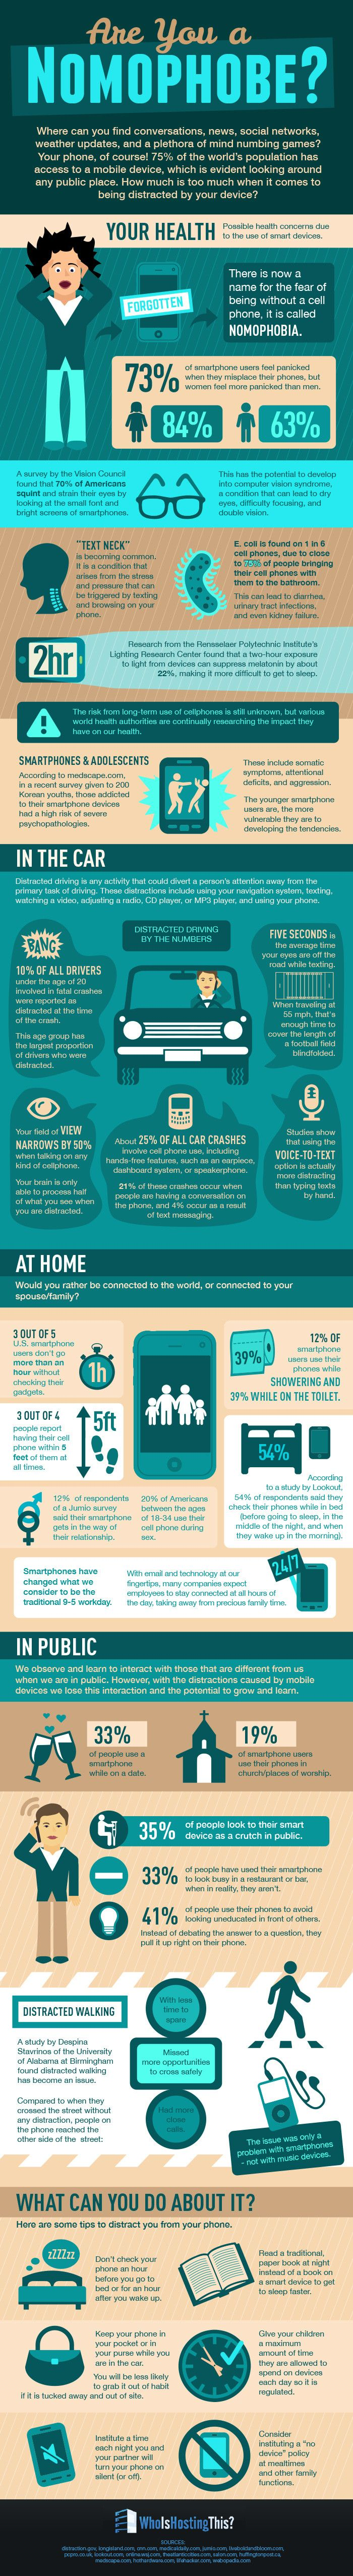 http://www.huffingtonpost.com/2014/07/31/smartphone-addiction_n_5626996.html?utm_hp_ref=mostpopular problems with smartphones